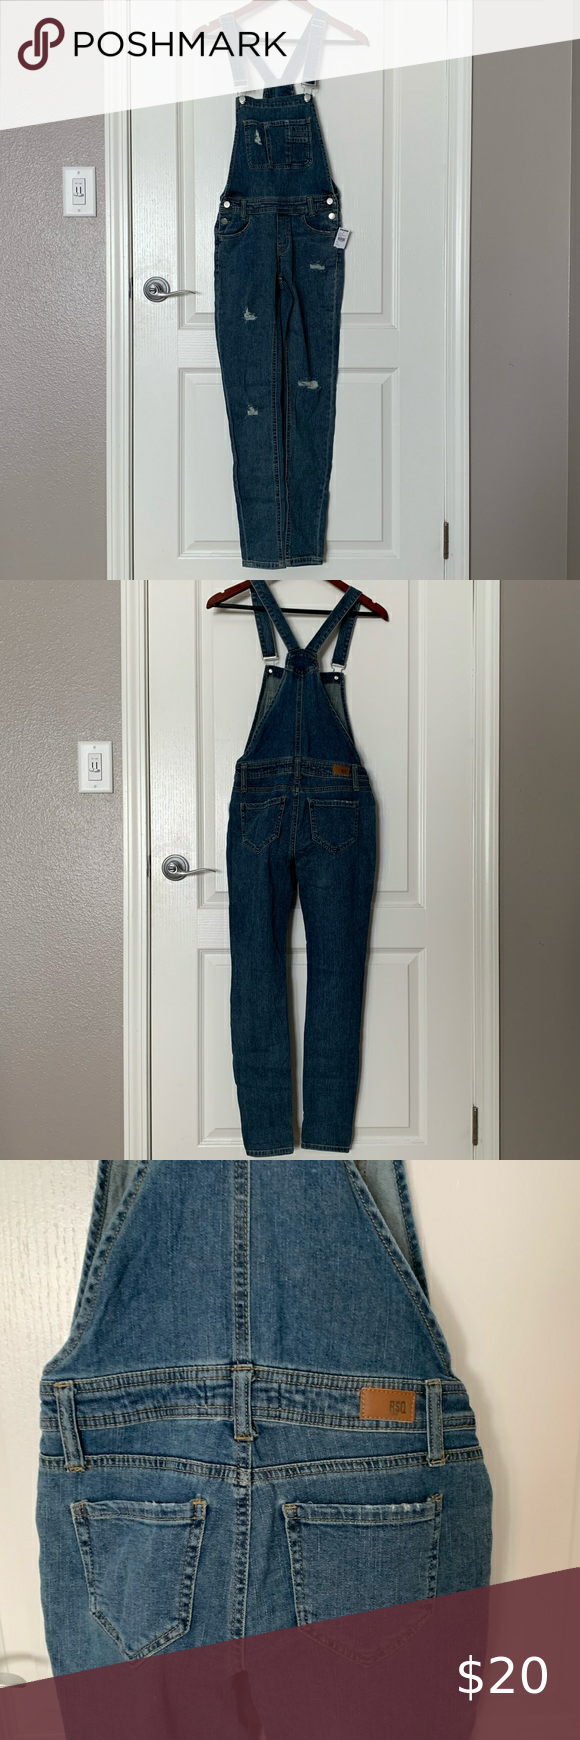 Dk Denim Dungarees  size 10  from Tu with tags